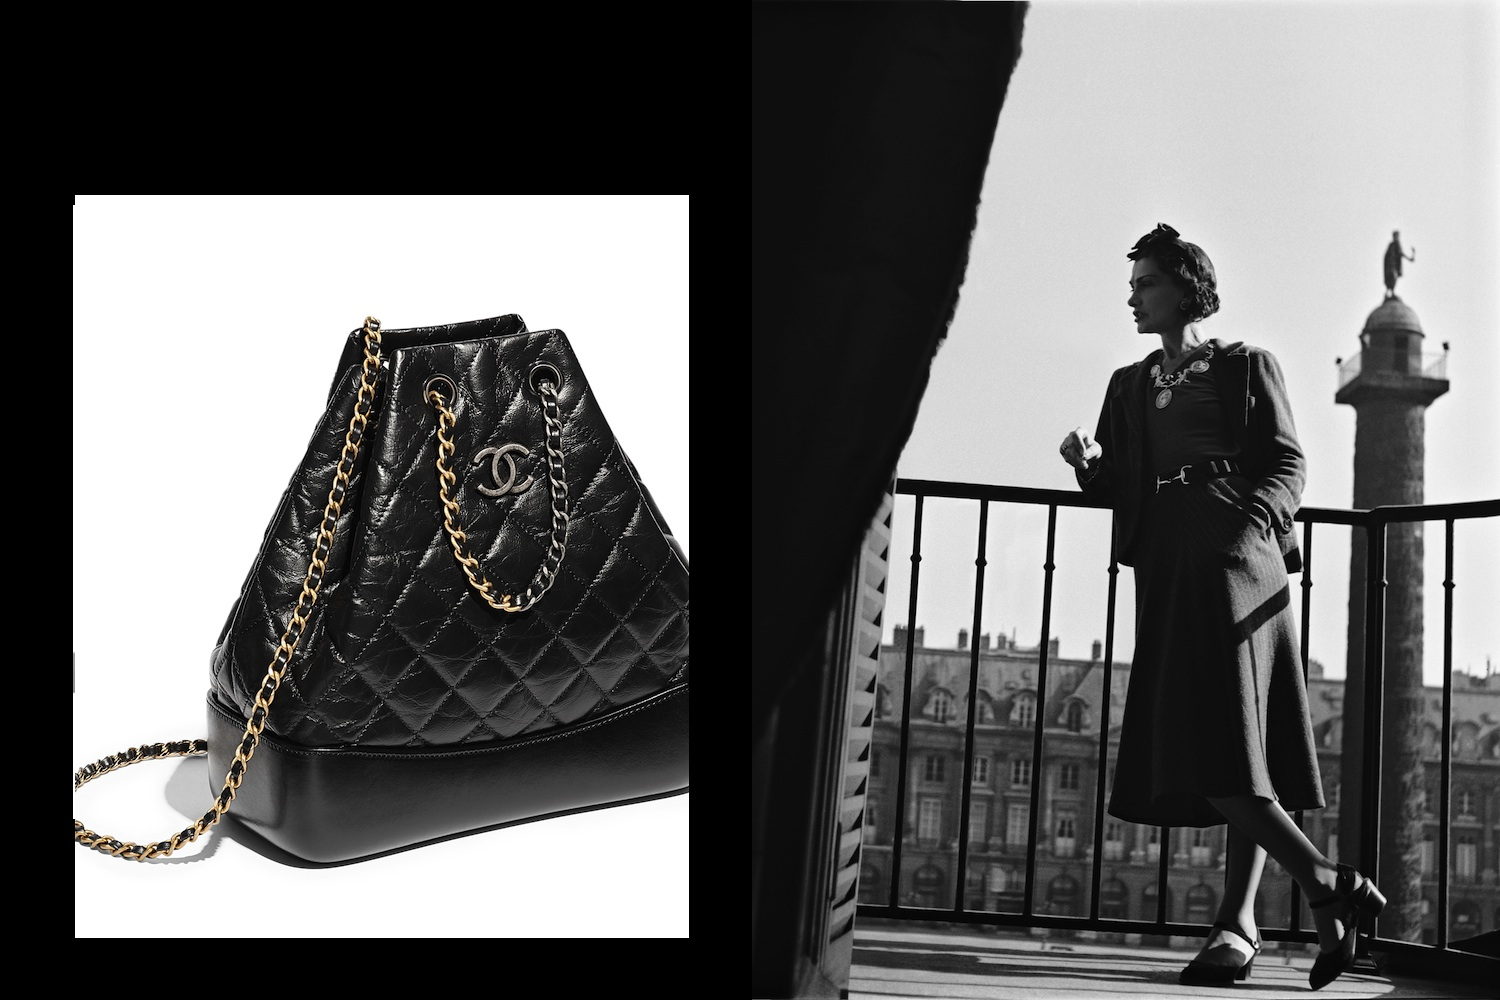 Images courtesy of Chanel